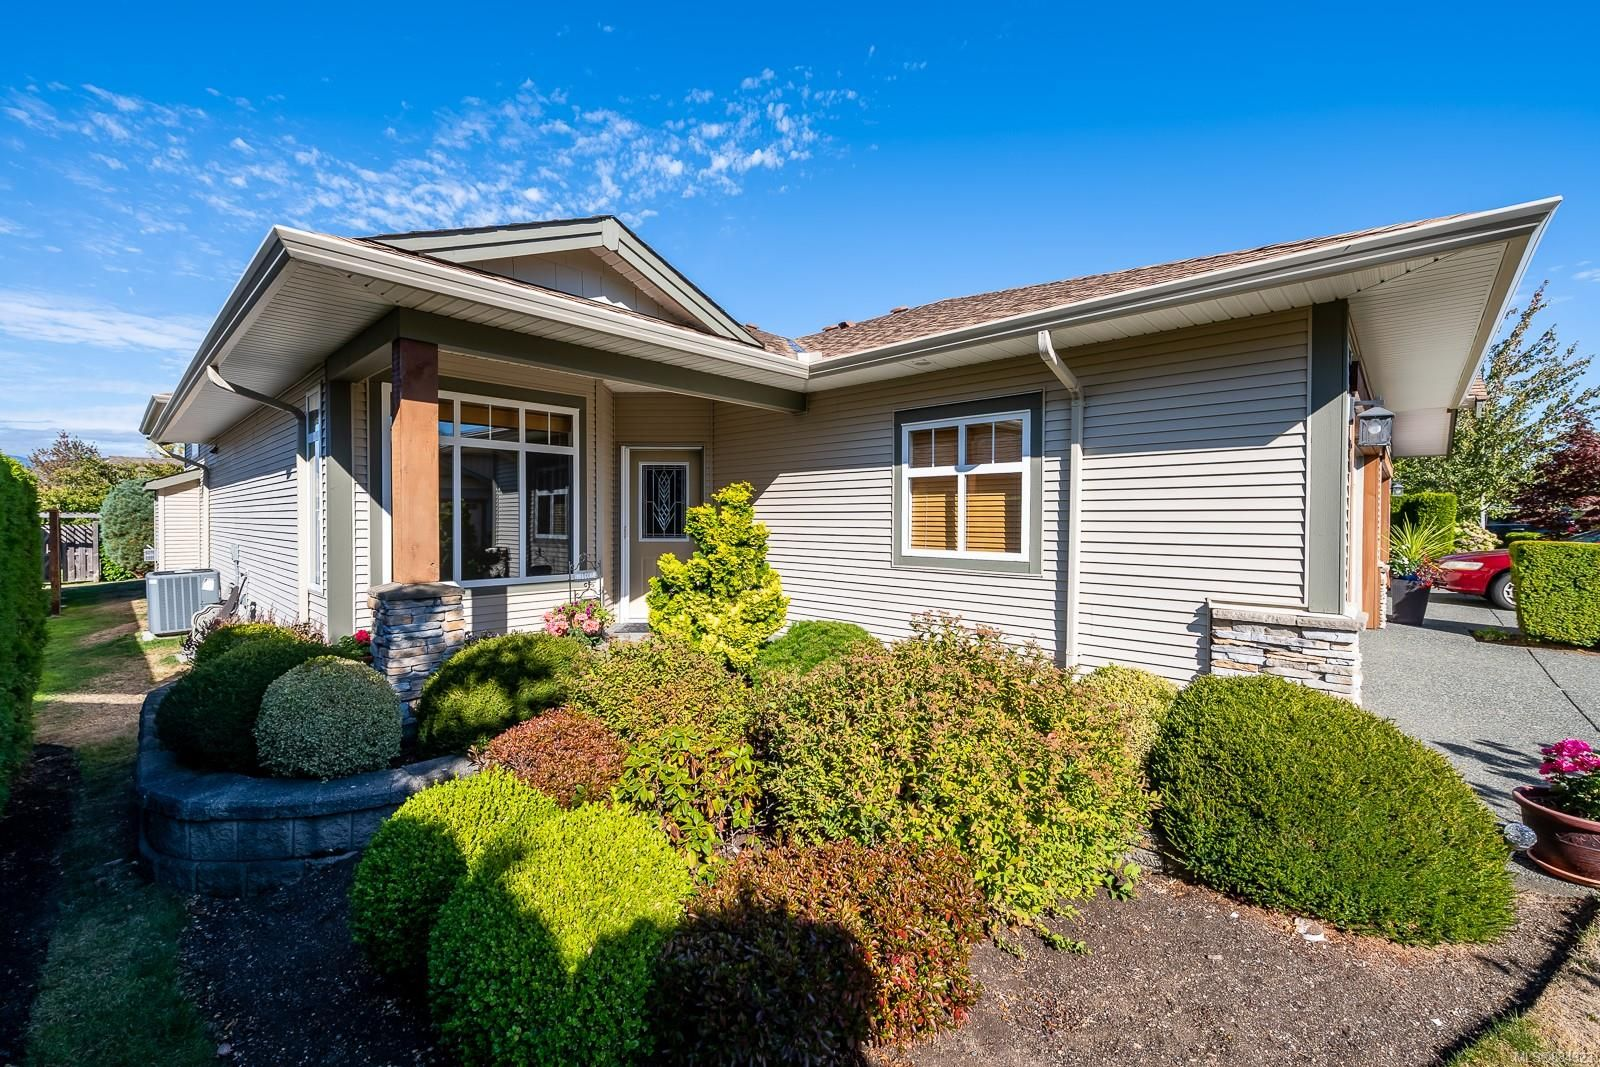 Main Photo: 19 2300 Murrelet Dr in : CV Comox (Town of) Row/Townhouse for sale (Comox Valley)  : MLS®# 884323